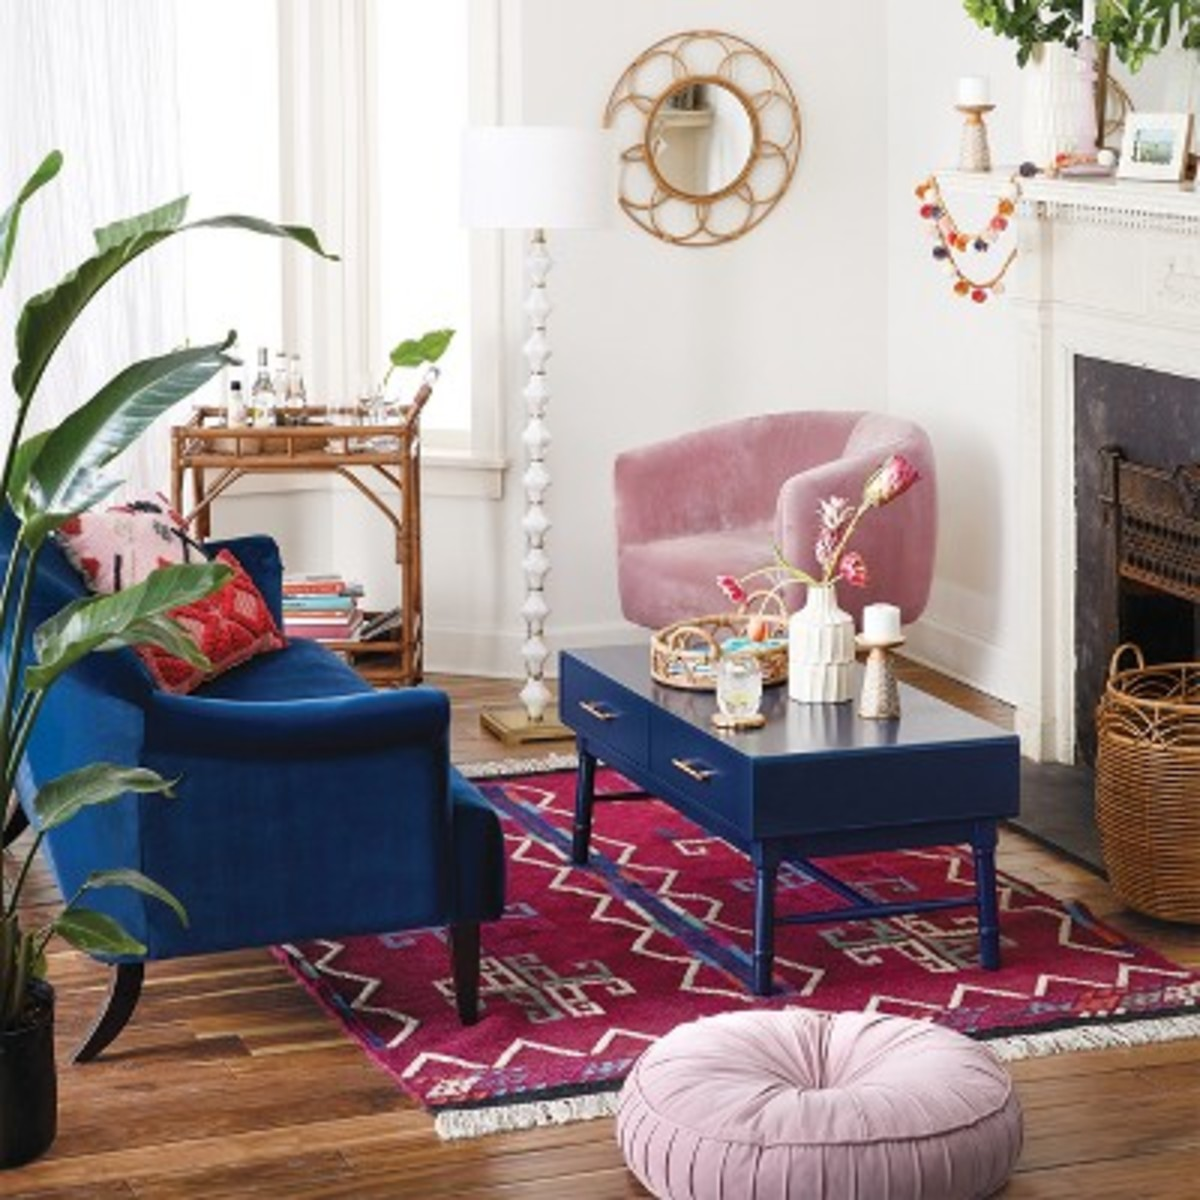 2019 Home Décor Trends | Dengarden